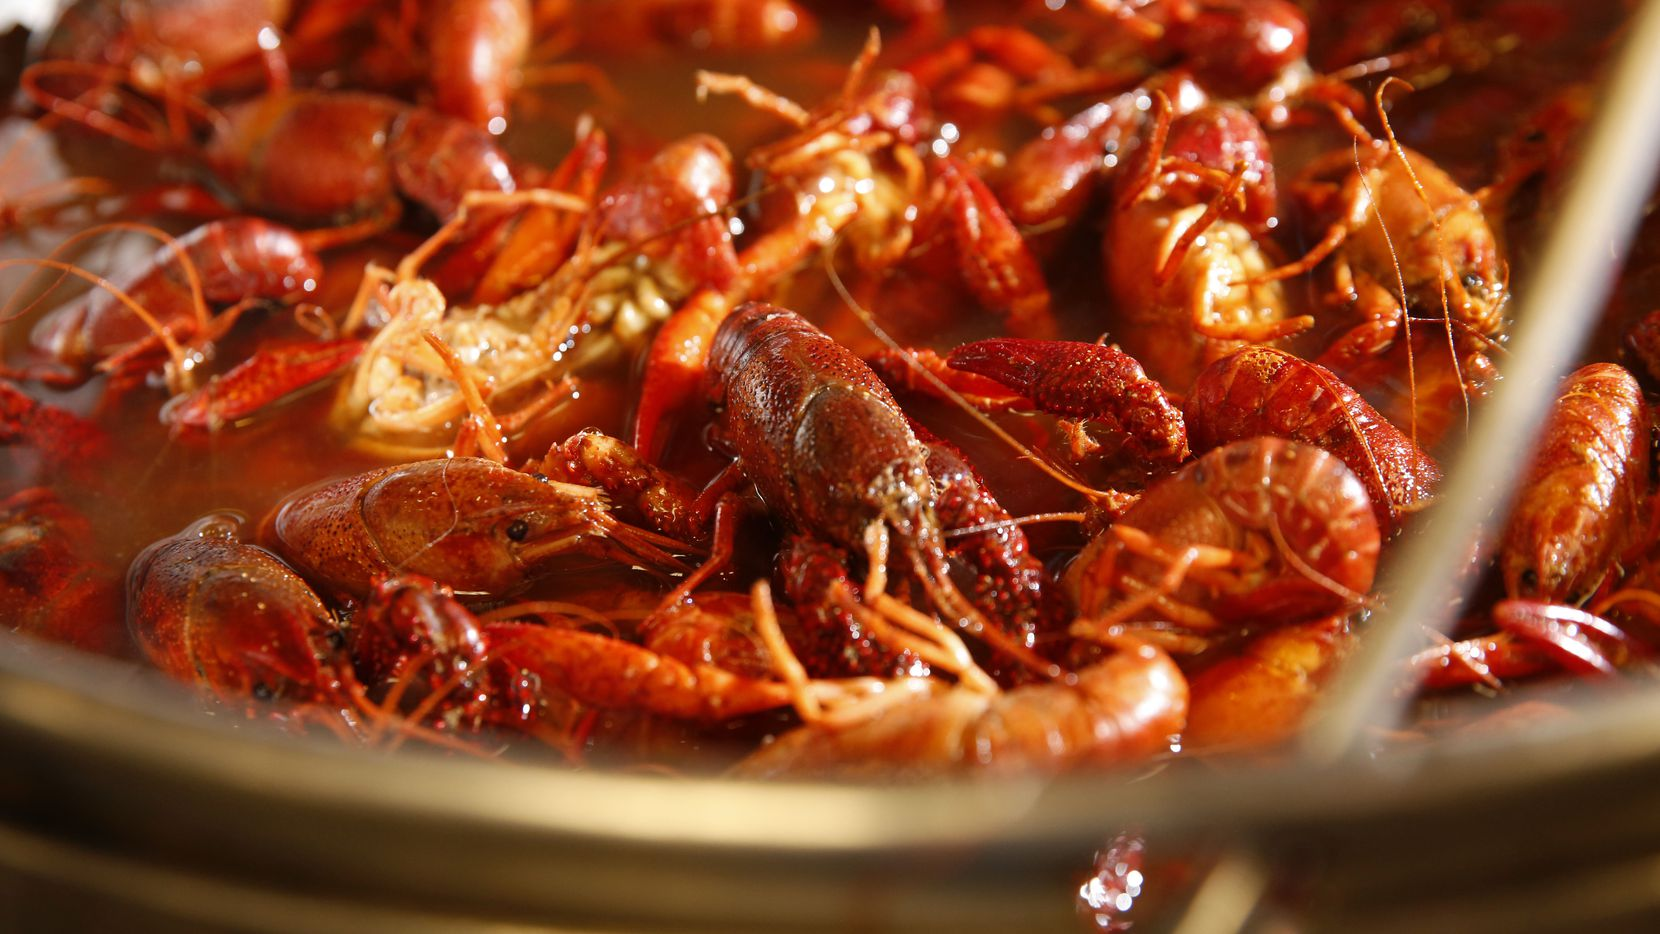 Crawfish are boiled at The Boiling Crab in Dallas